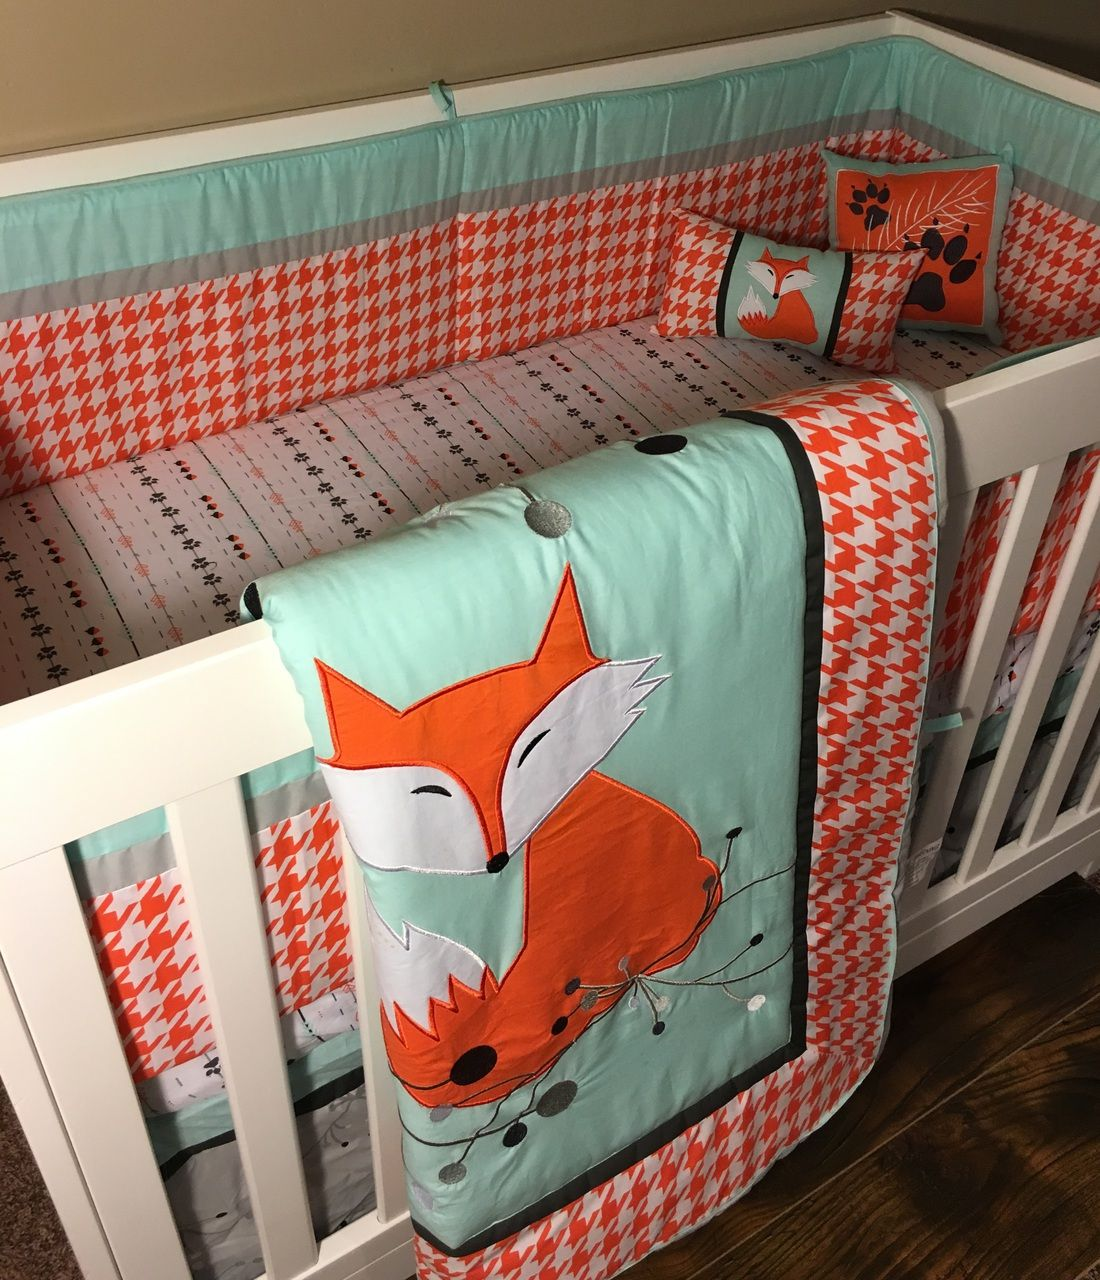 dkl clever as a fox crib bedding set | bed sets, crib and clever